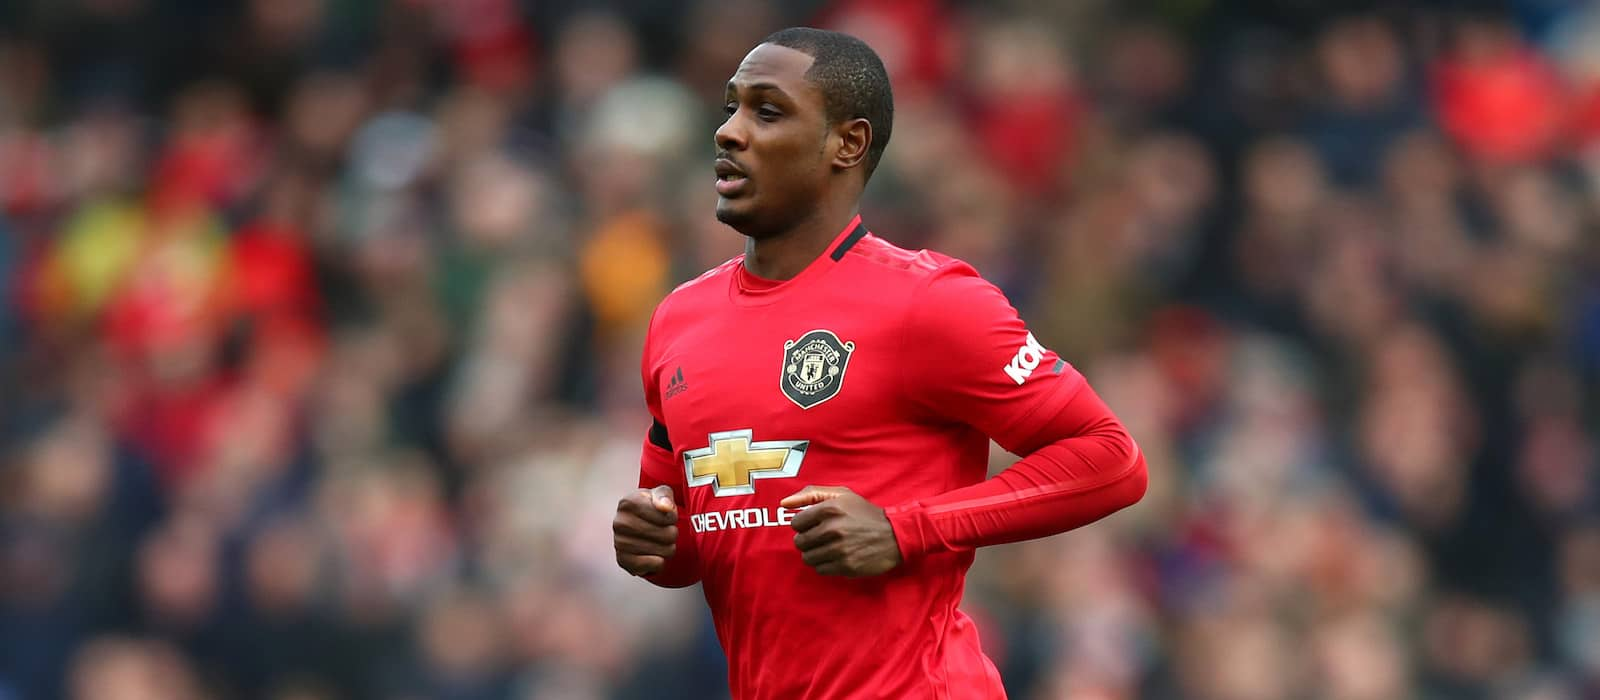 Odion Ighalo reveals all about Manchester United transfer situation